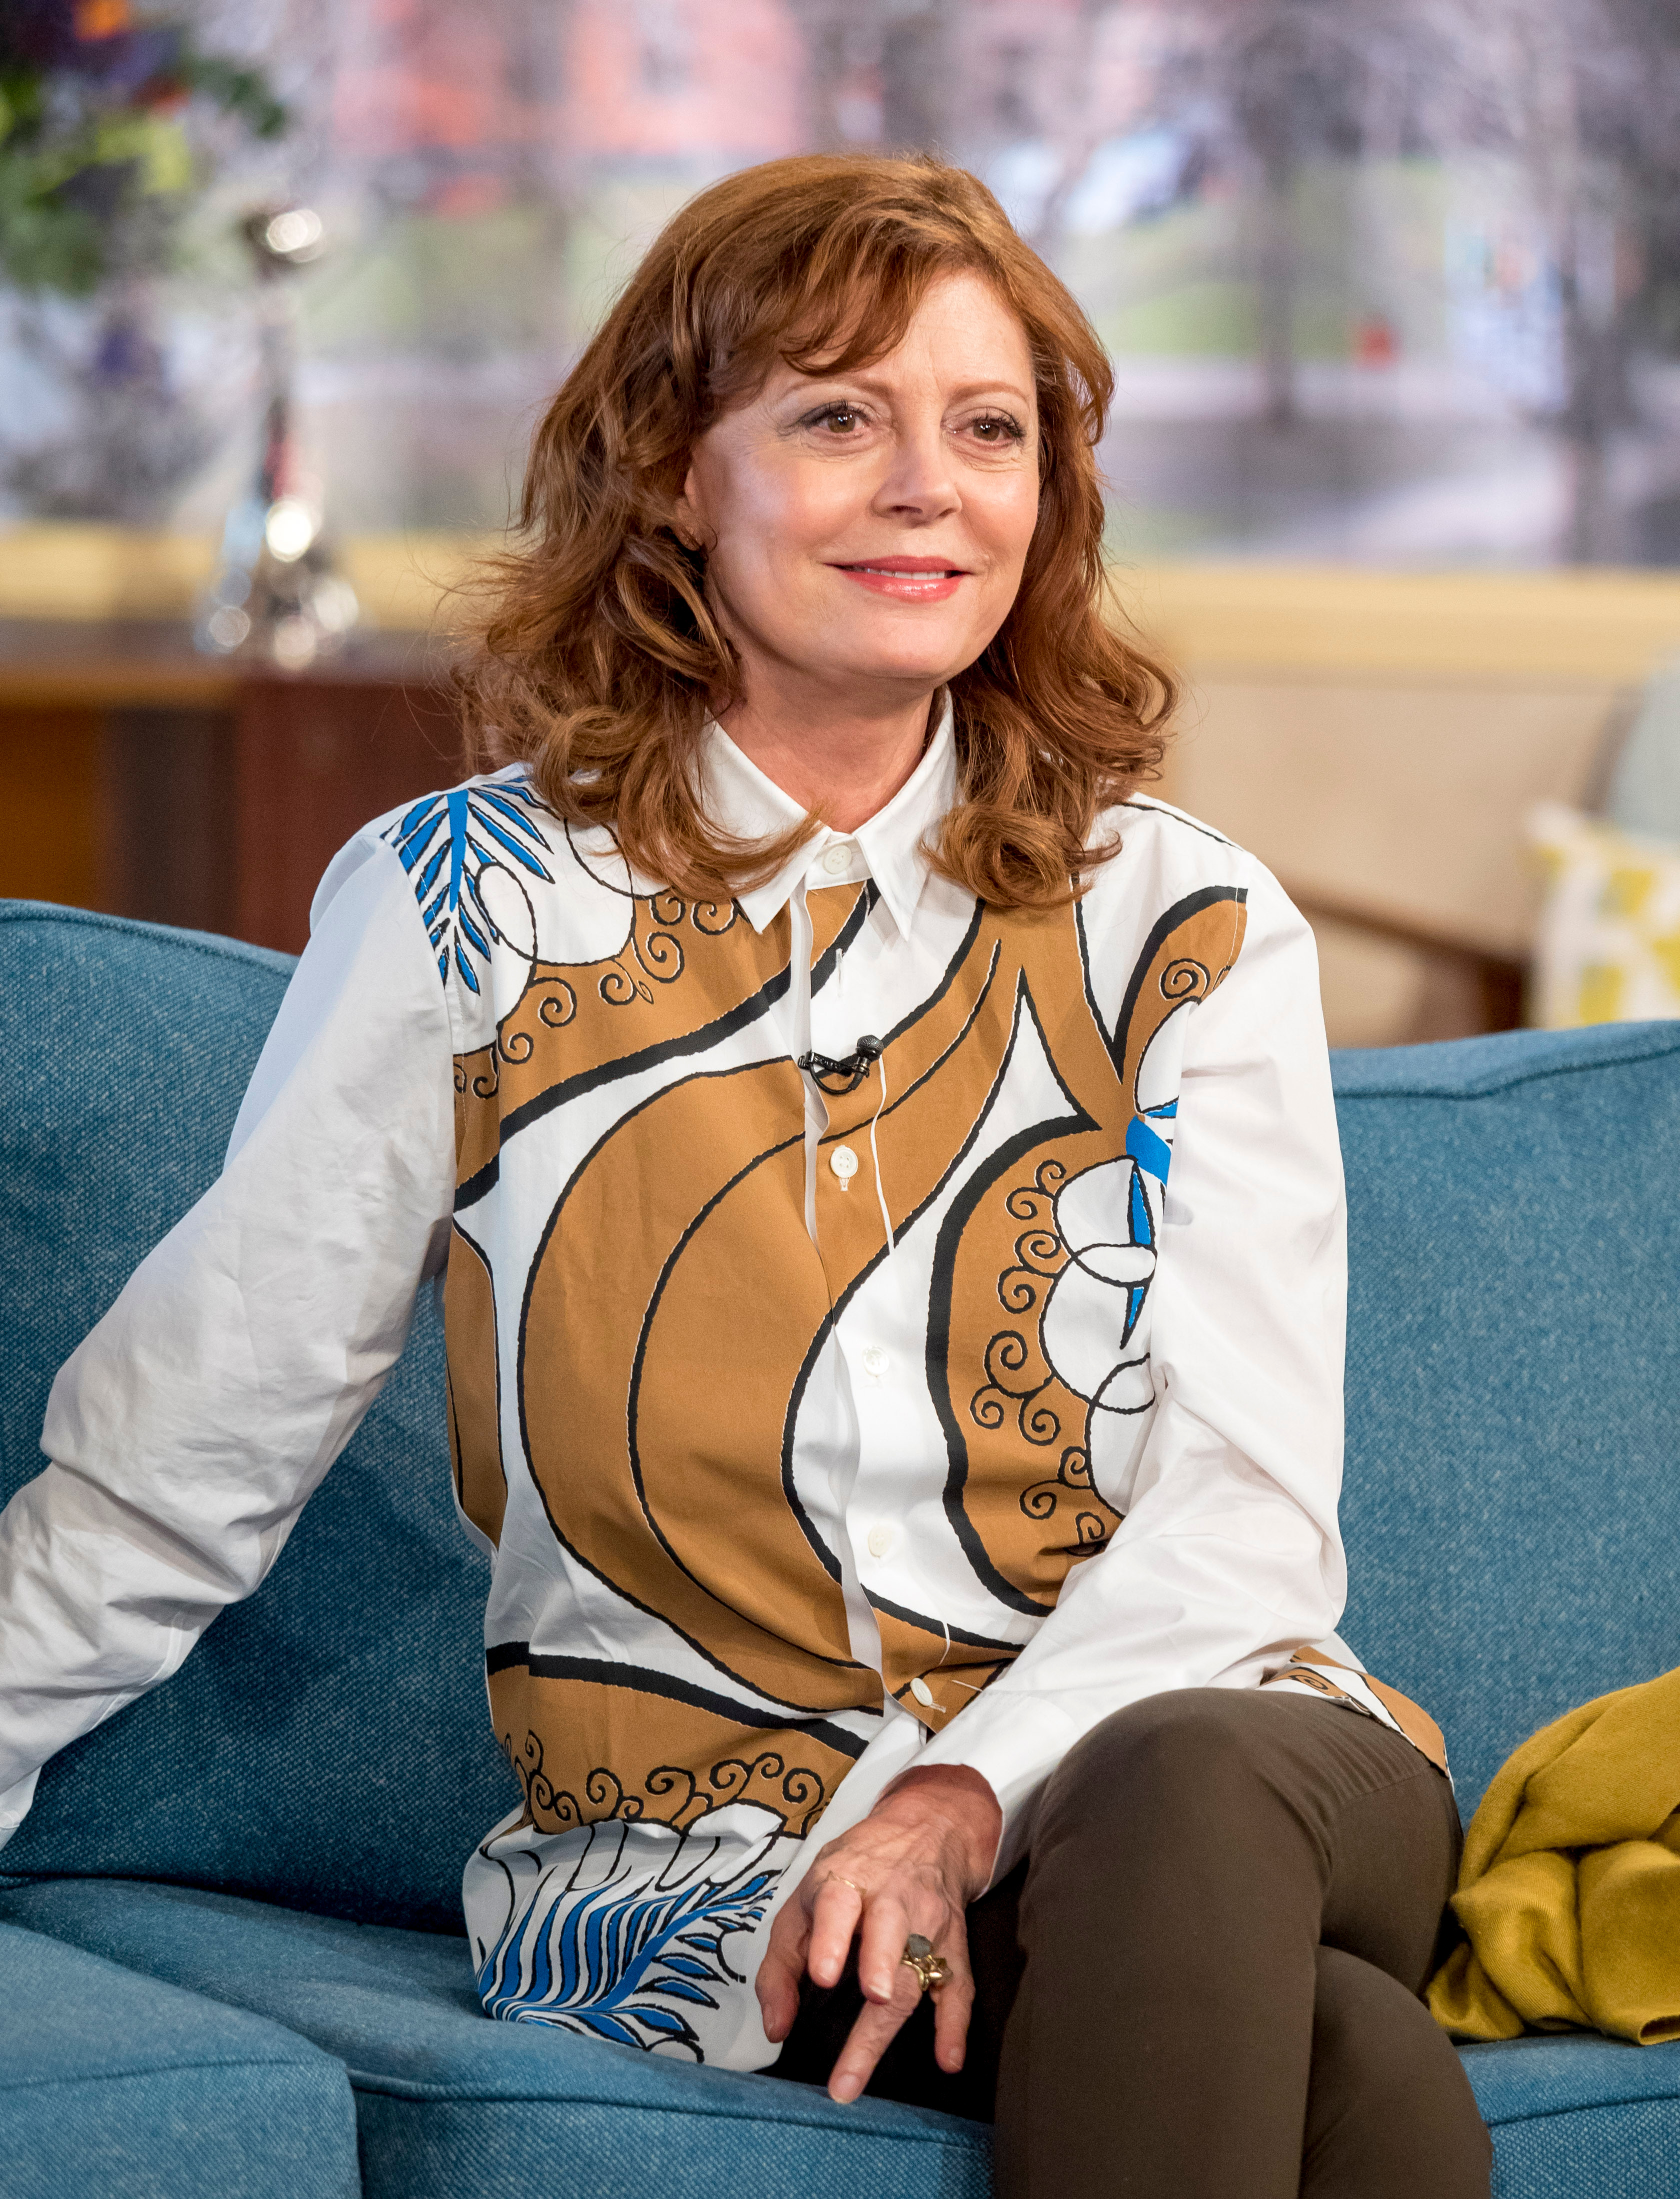 Susan Sarandon Posts Selfie of Bruised Eye, Calls Herself 'Lucky' After Suffering Concussion